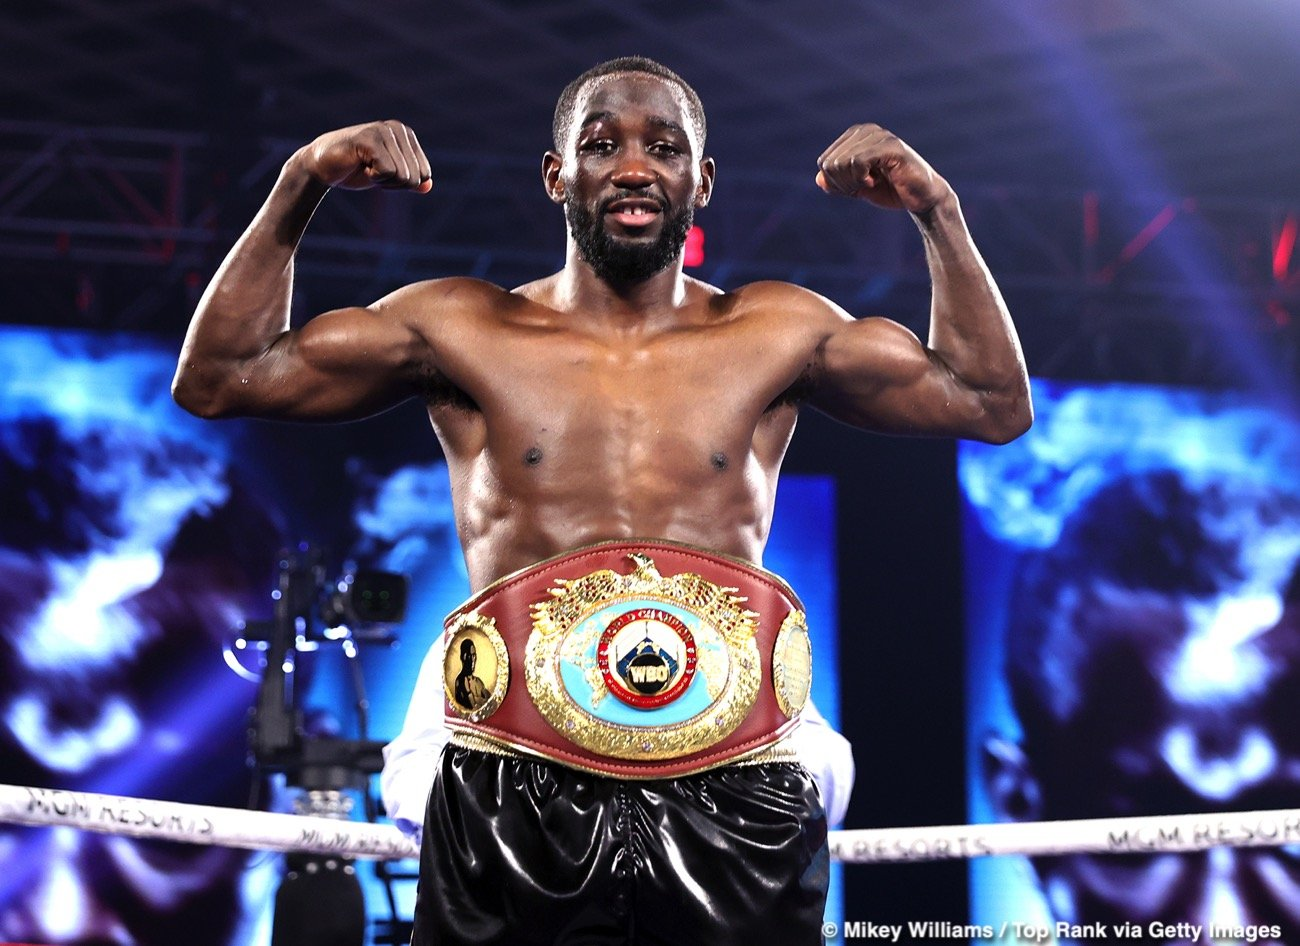 Andre Ward, Kell Brook, Terence Crawford - Andre Ward sums up WBO welterweight champion Terence Crawford's win over Kell Brook last Saturday as one in which he got the job done, but it wasn't an all-around impressive performance from start to finish.